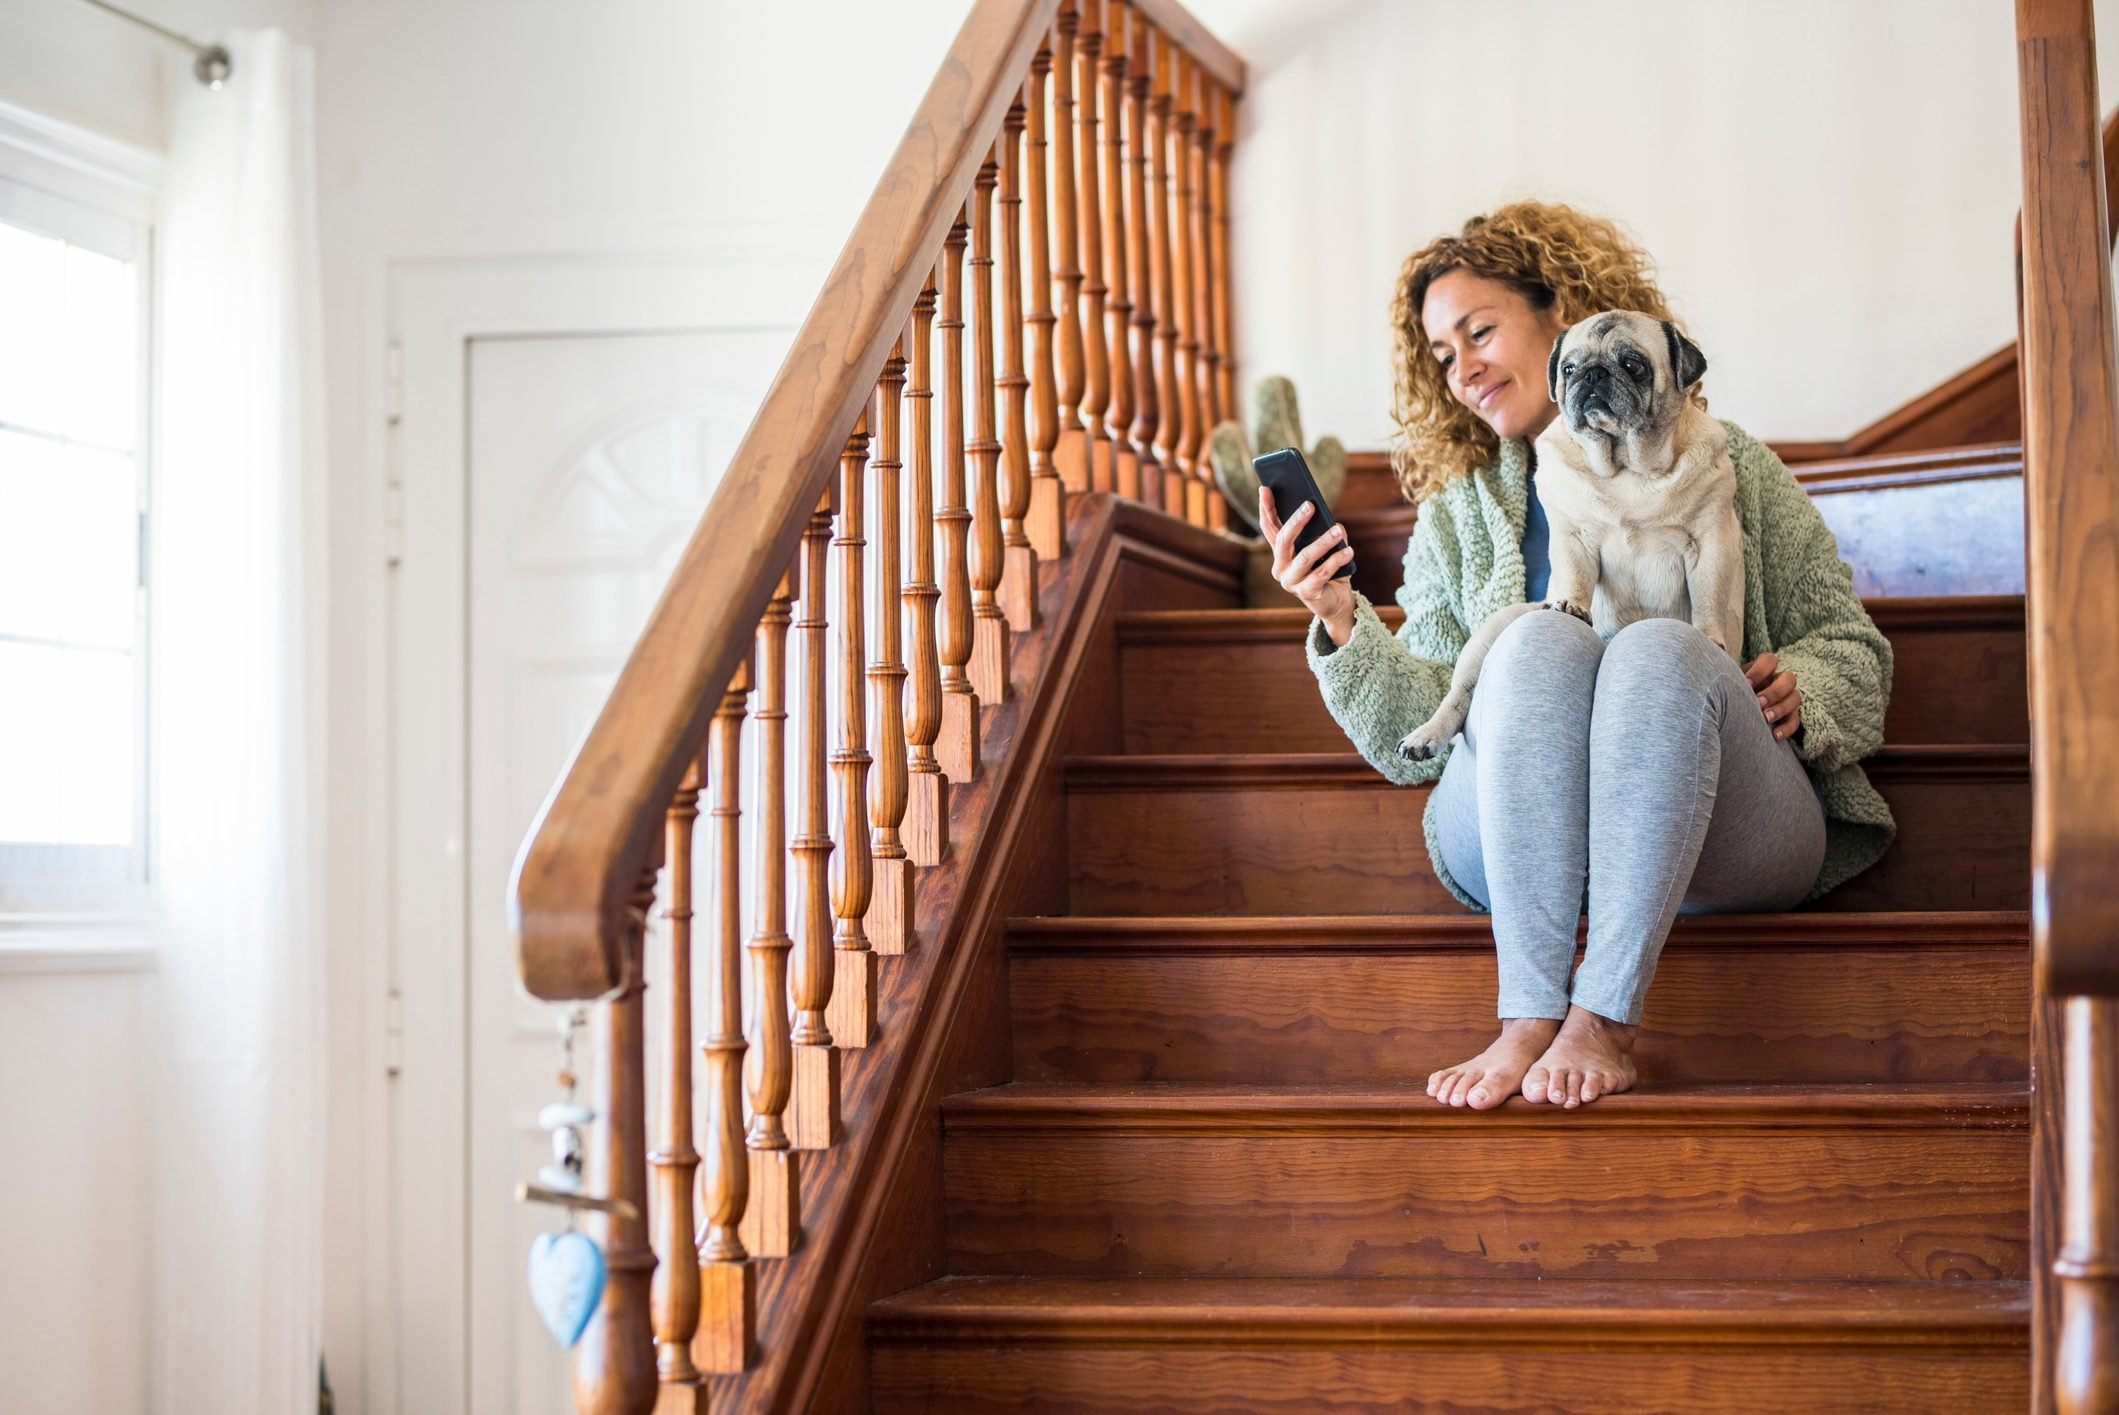 Woman sitting on stairs, using smartphone with pug on her lap